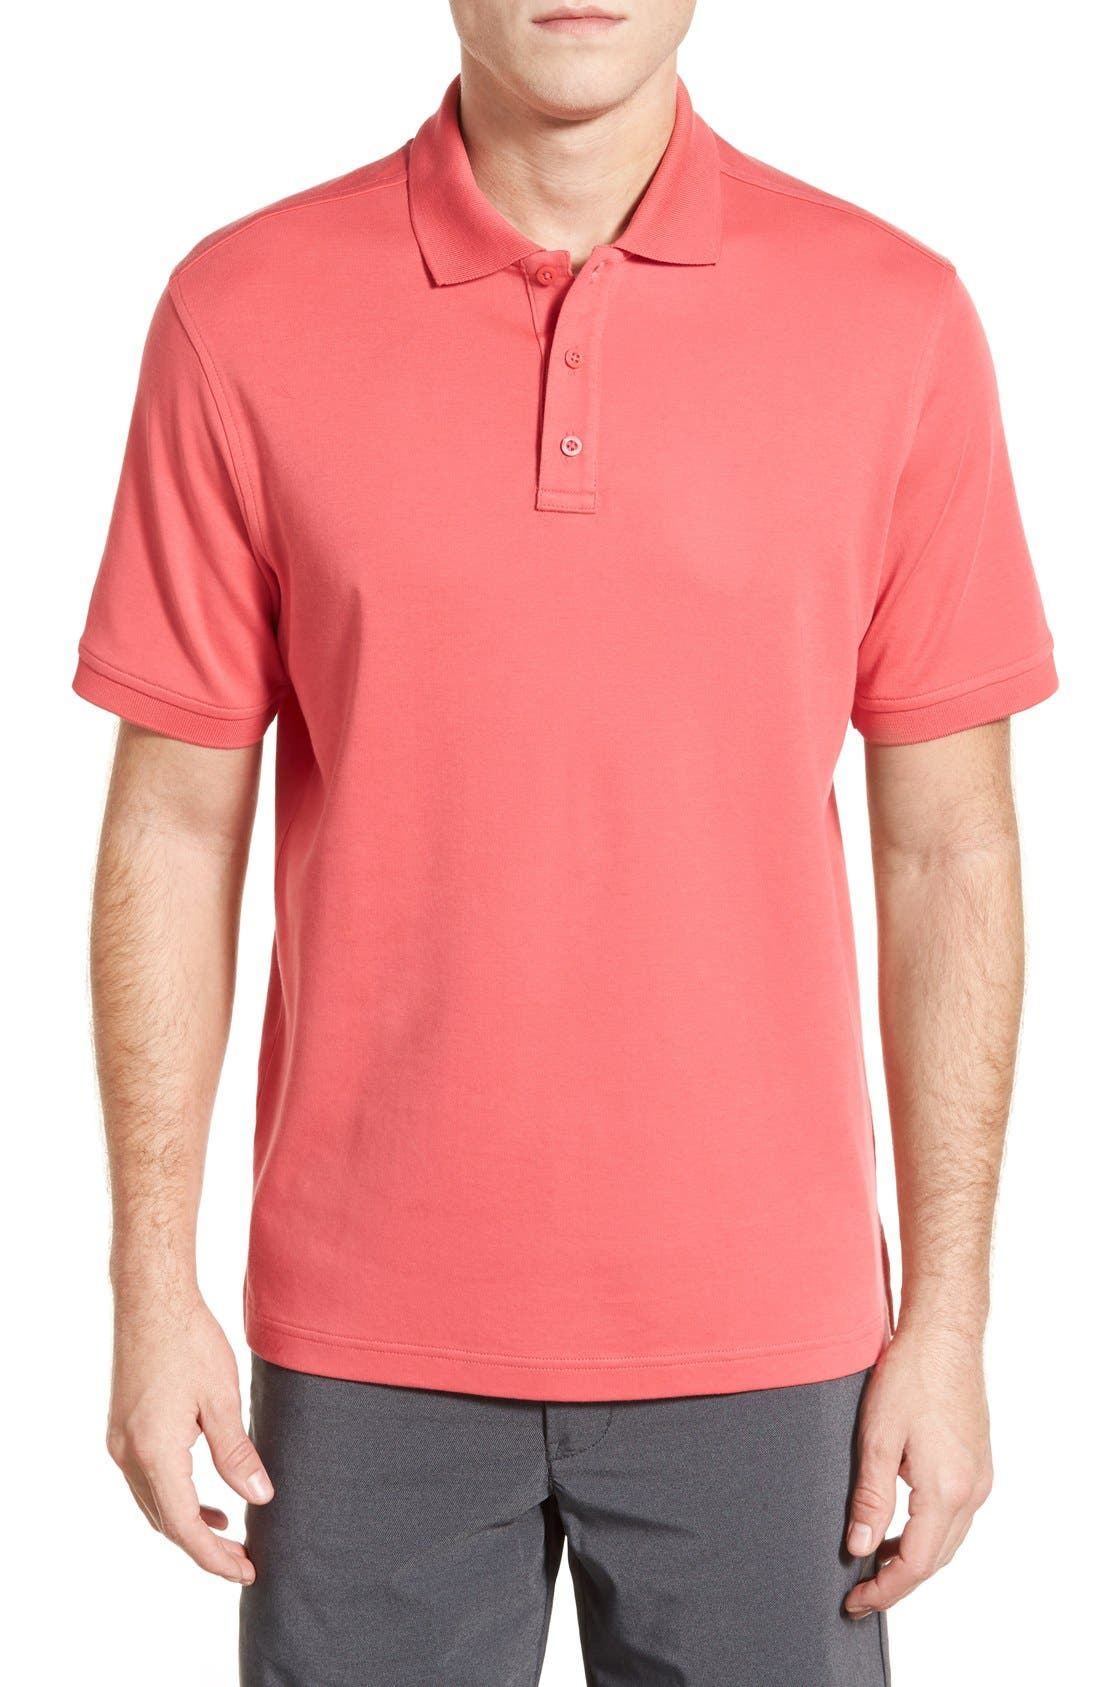 Nordstrom Men's Shop Regular Fit Interlock Knit Polo